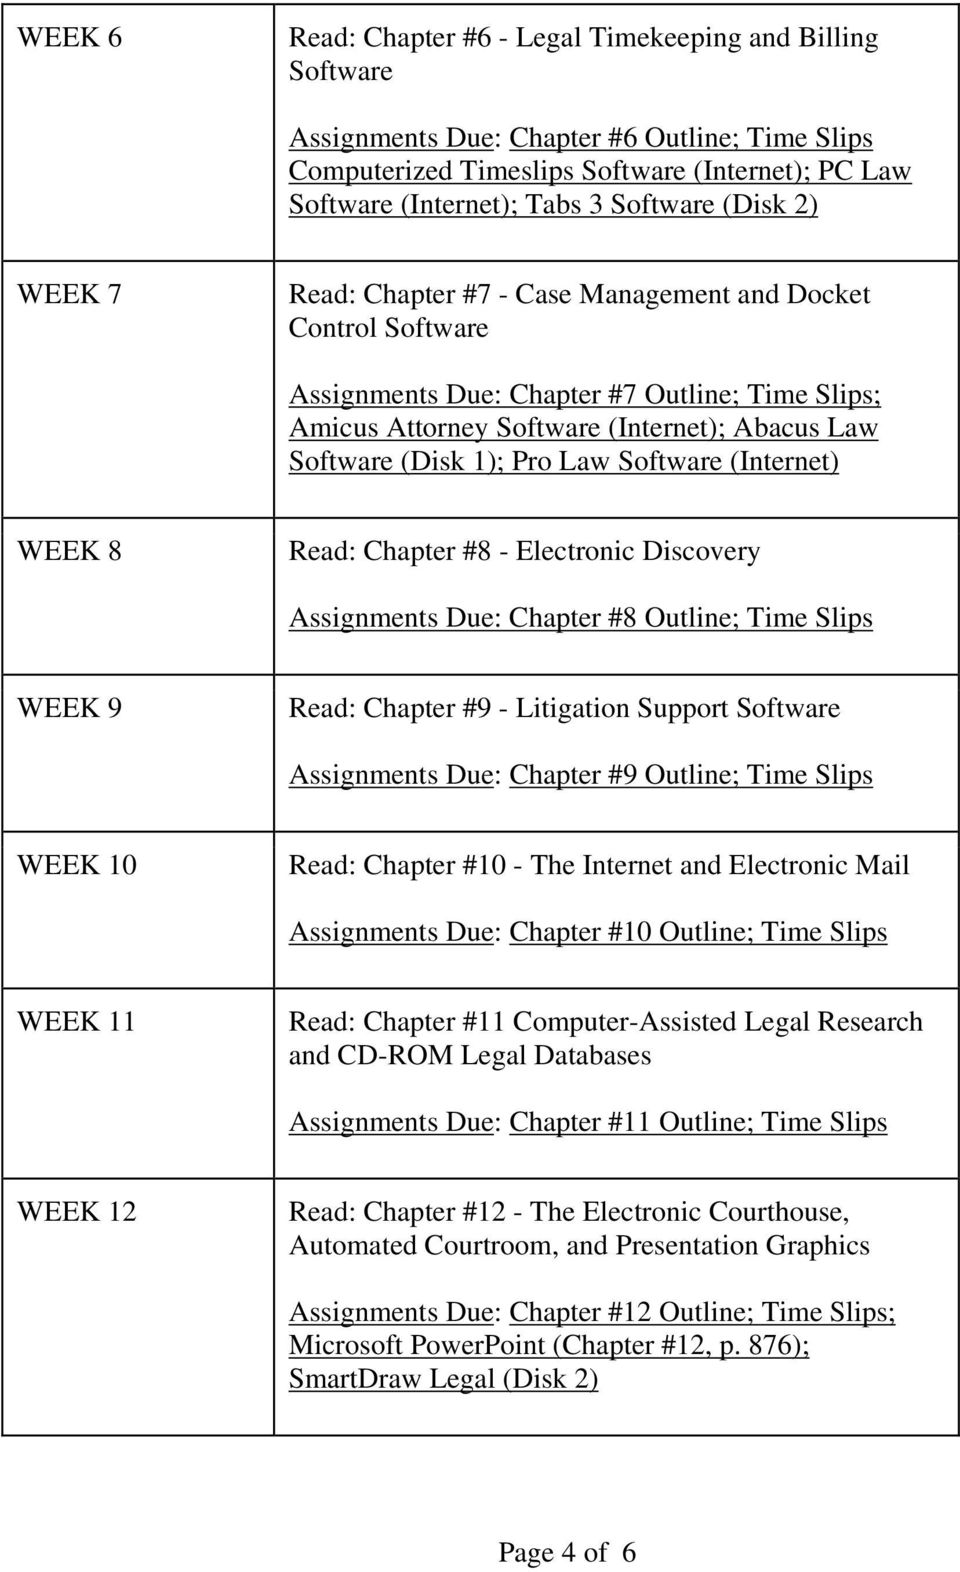 1); Pro Law Software (Internet) WEEK 8 Read: Chapter #8 - Electronic Discovery Assignments Due: Chapter #8 Outline; Time Slips WEEK 9 Read: Chapter #9 - Litigation Support Software Assignments Due: